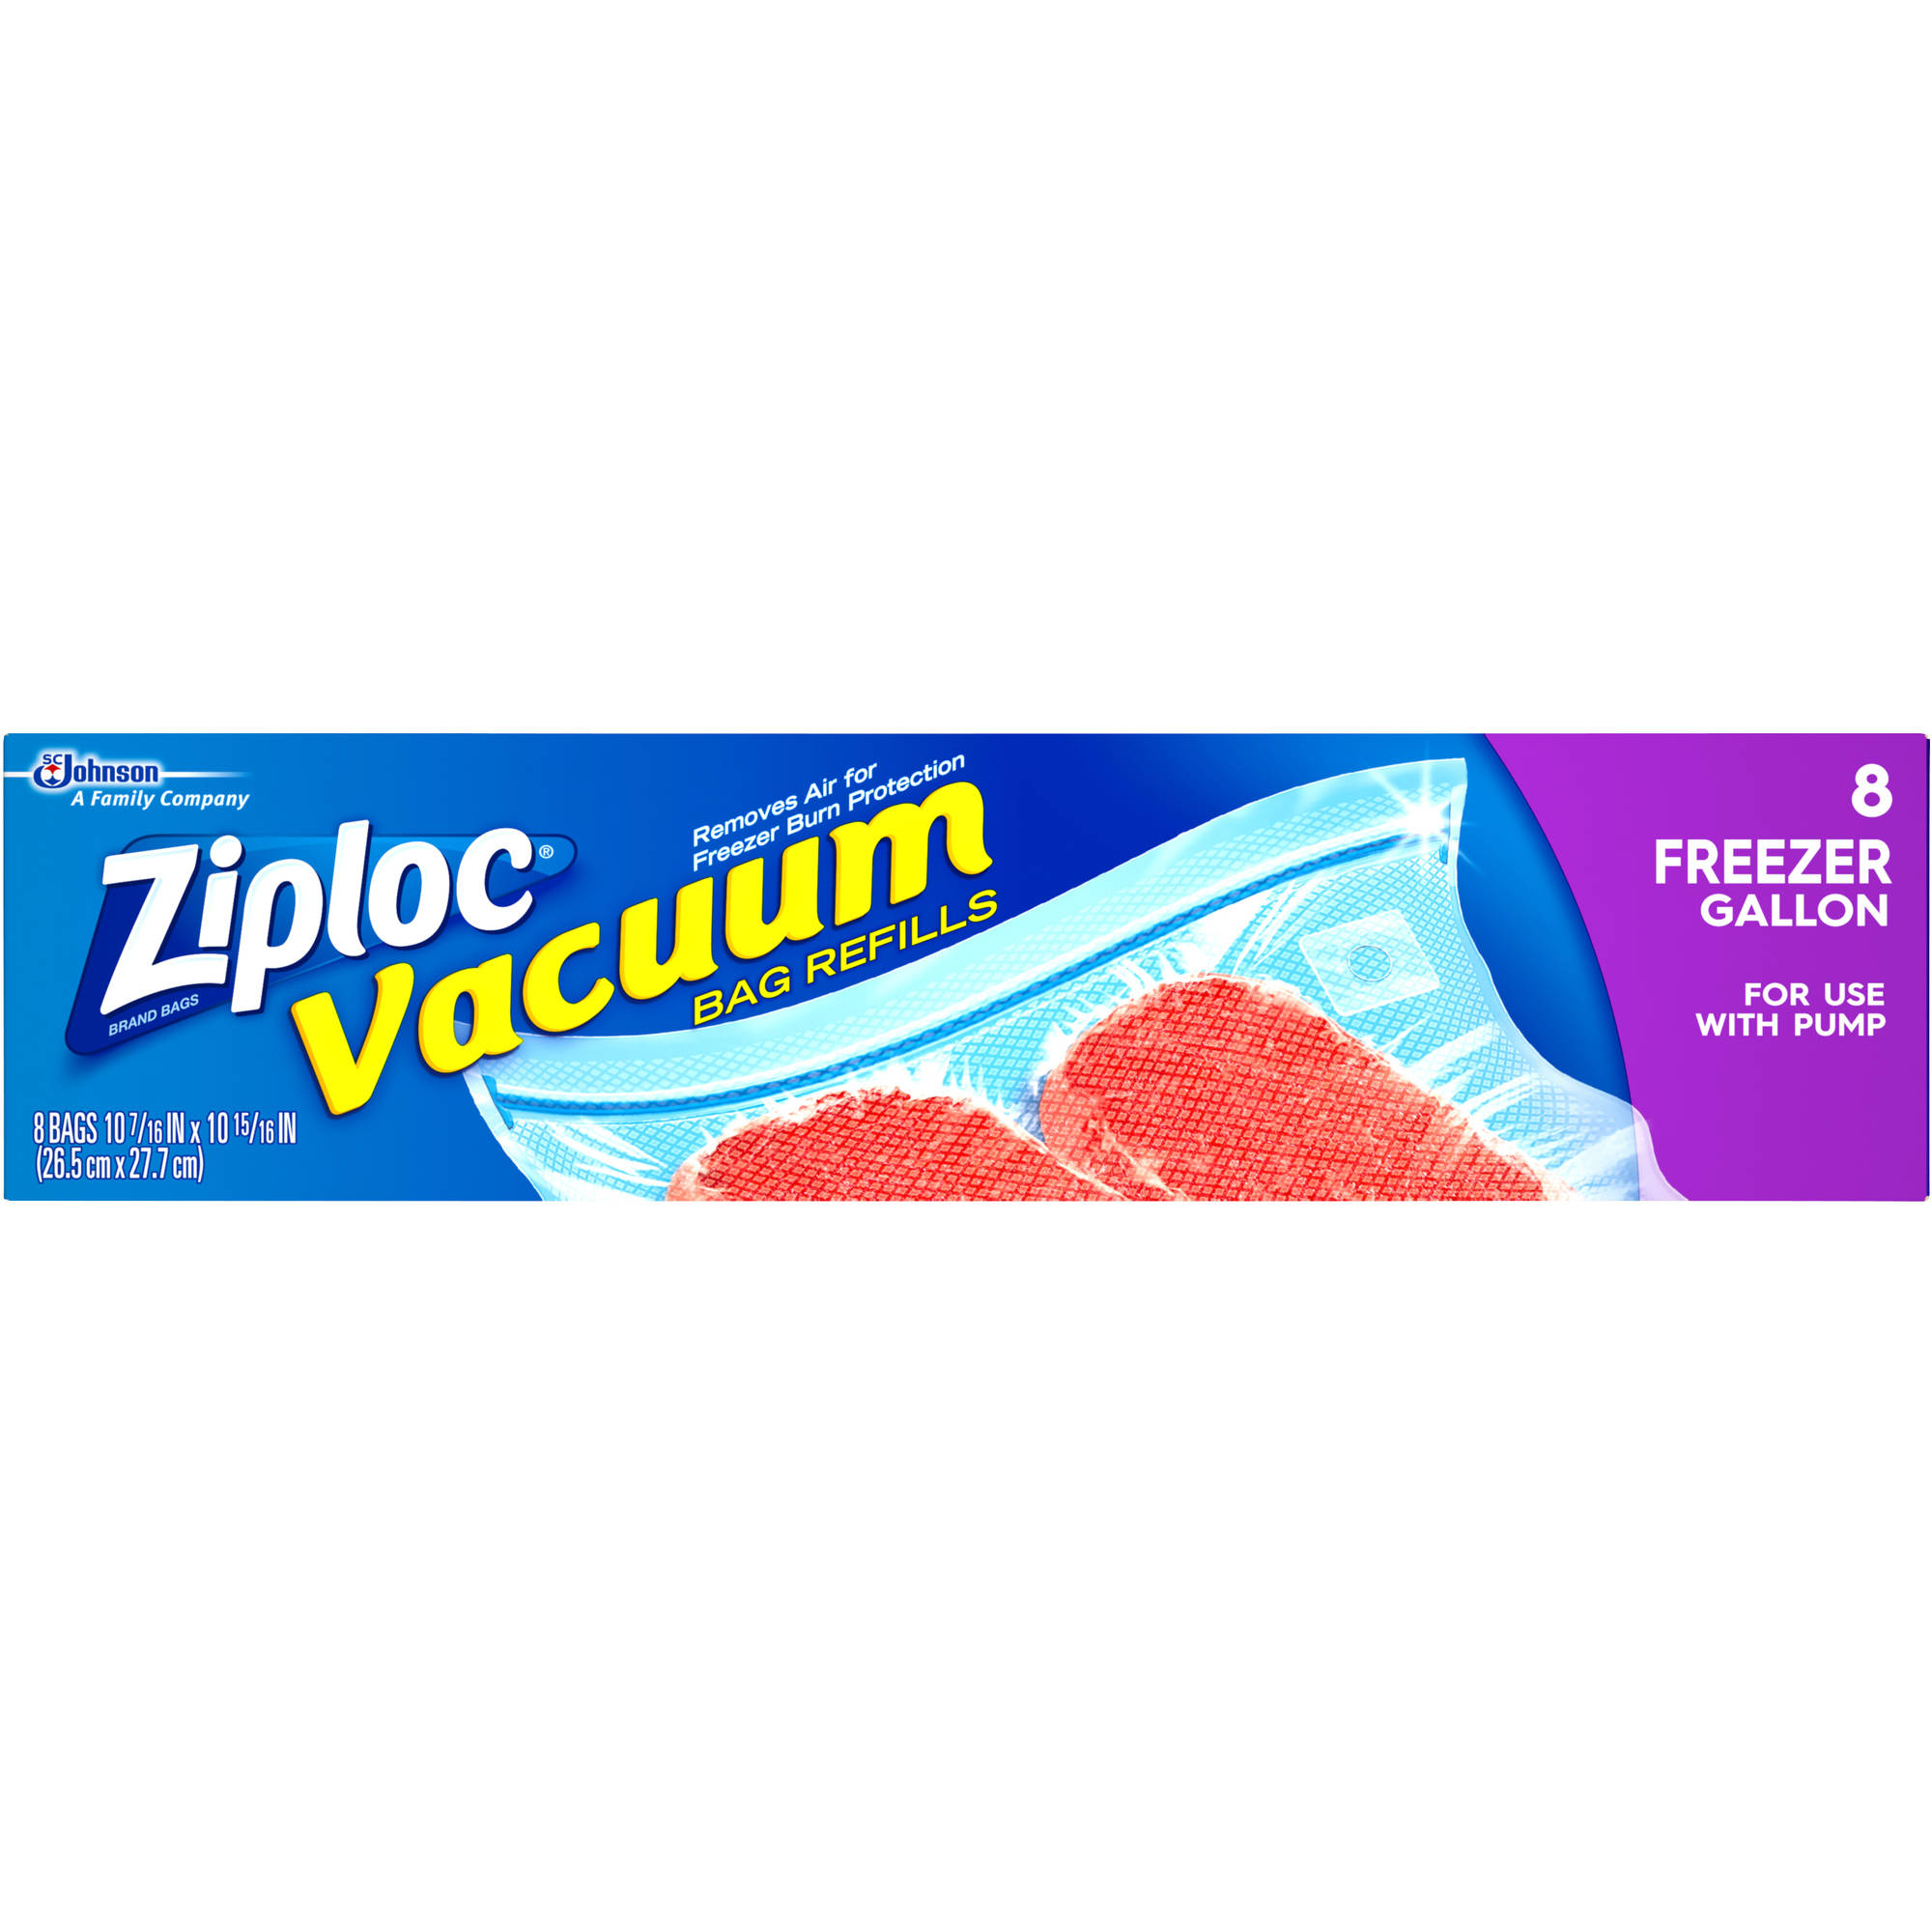 Ziploc Freezer Gallon Vacuum Bag Refills, 8 count